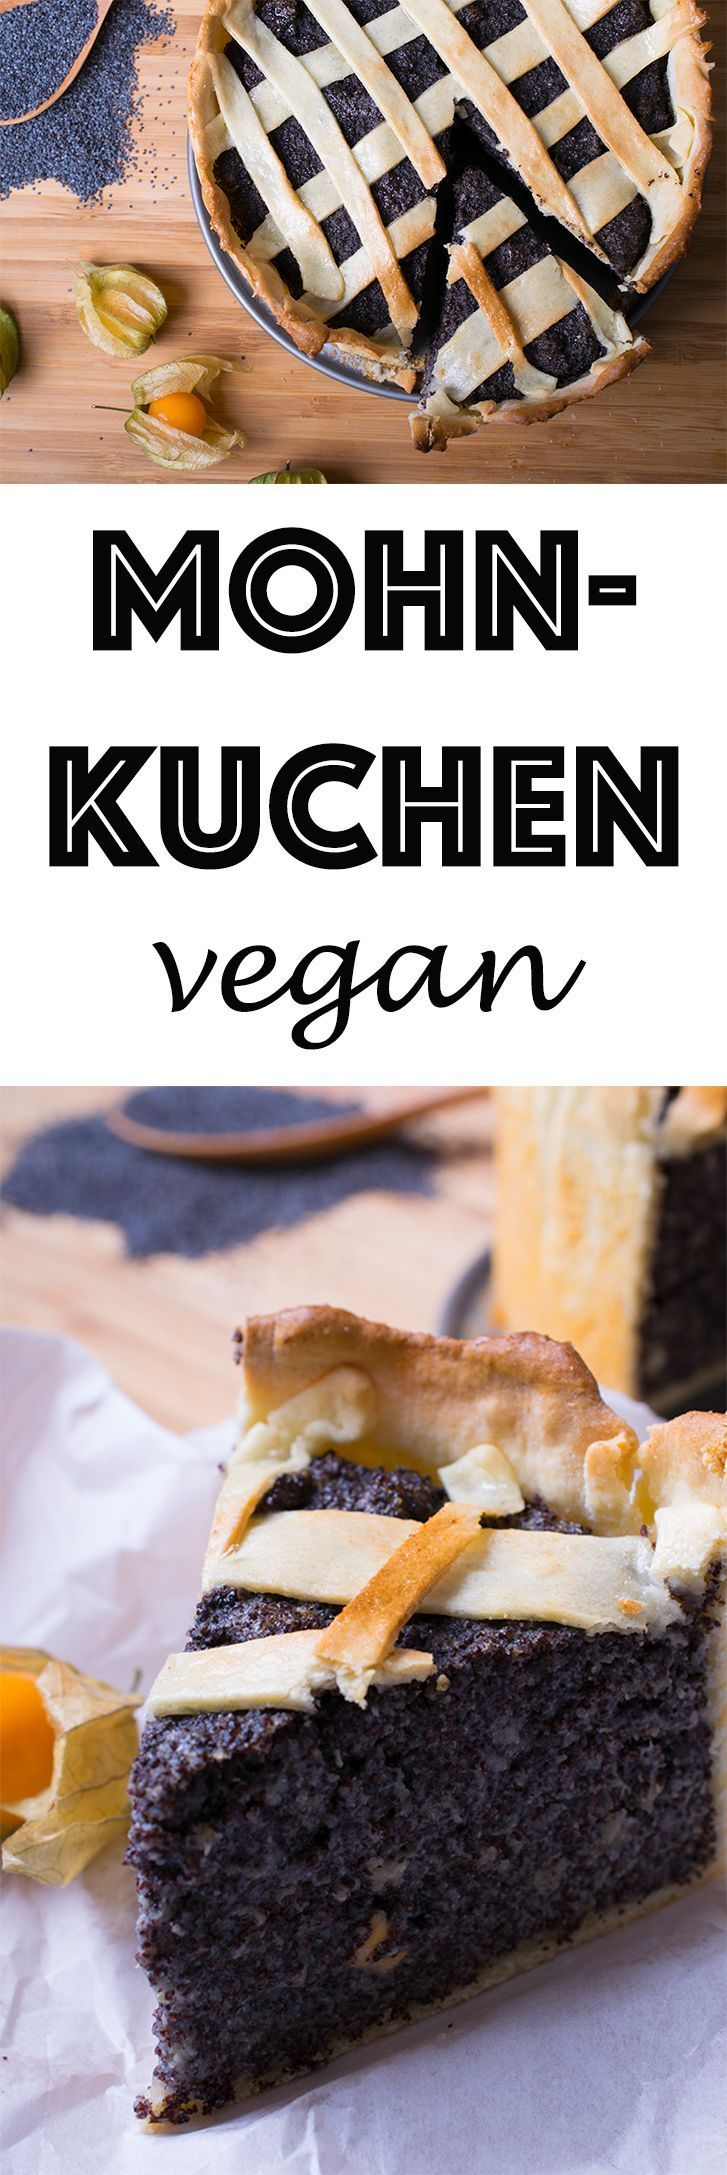 Endlich: Gesunder & Veganer Mohnkuchen - *** Vegan poppy-seed cake with silken tofu. This and more other healthy recipes available at http://www.eat-vegan.de (english and german recipe versions available).